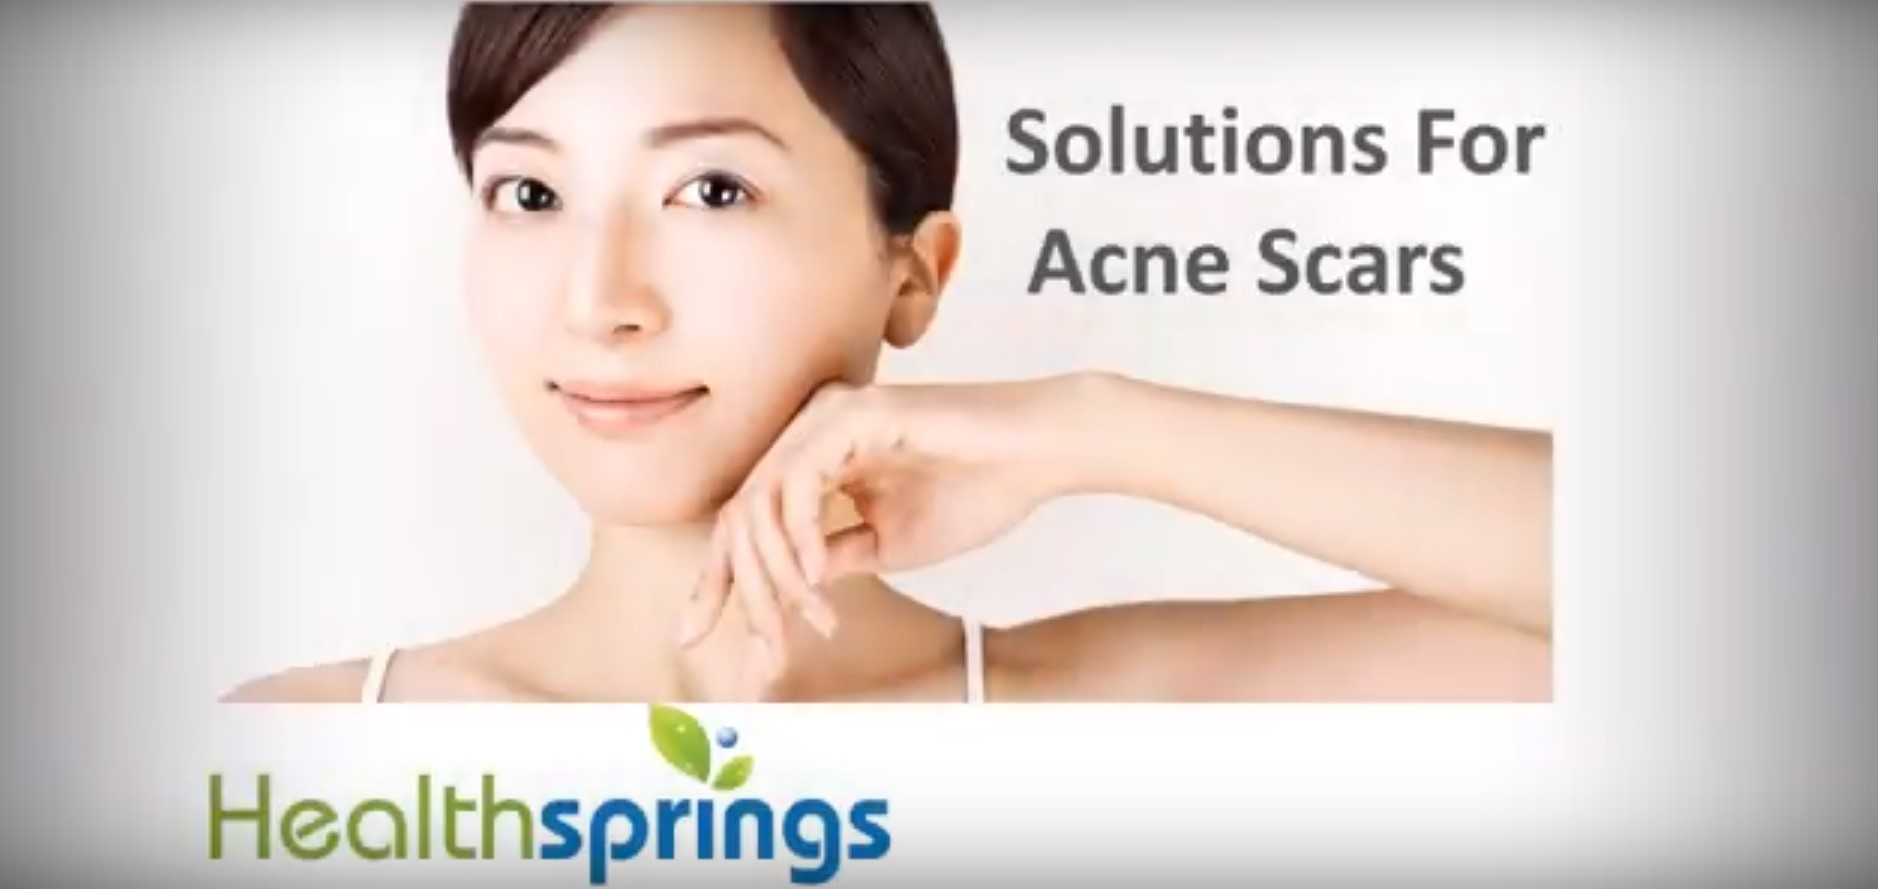 SOLUTIONS FOR ACNE SCARS